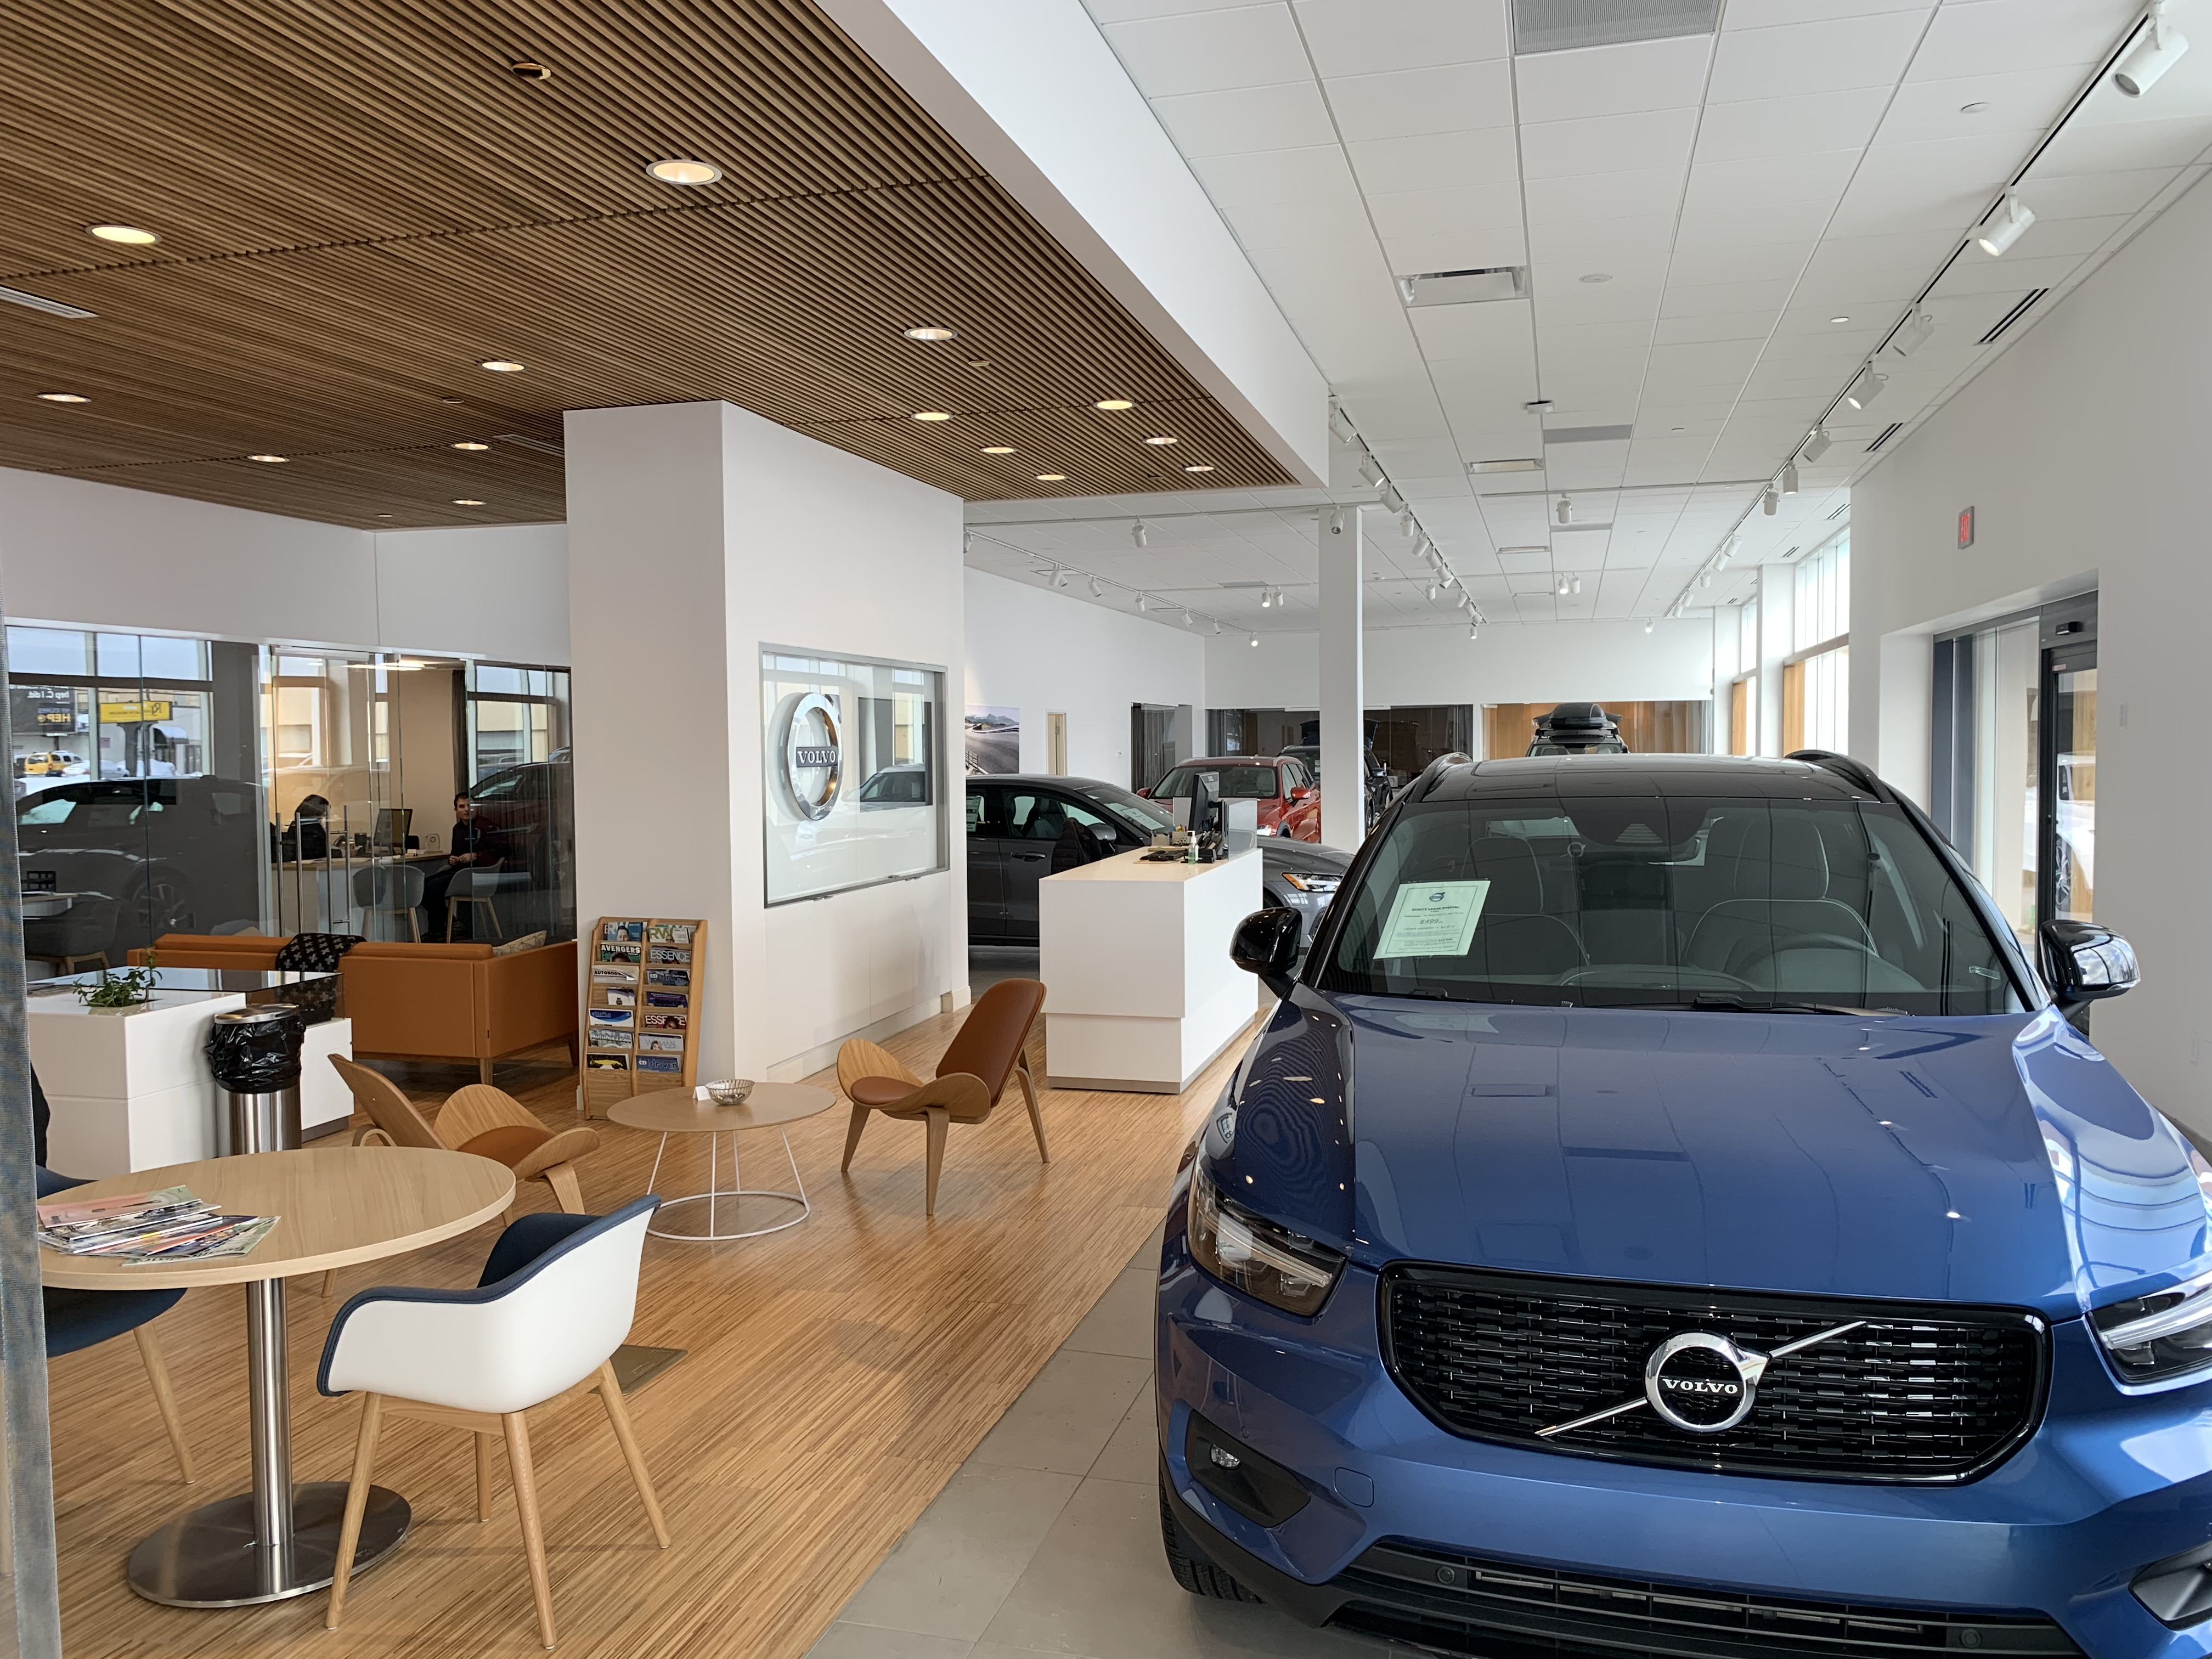 Syracuse's Alan Byer Volvo completes major renovation